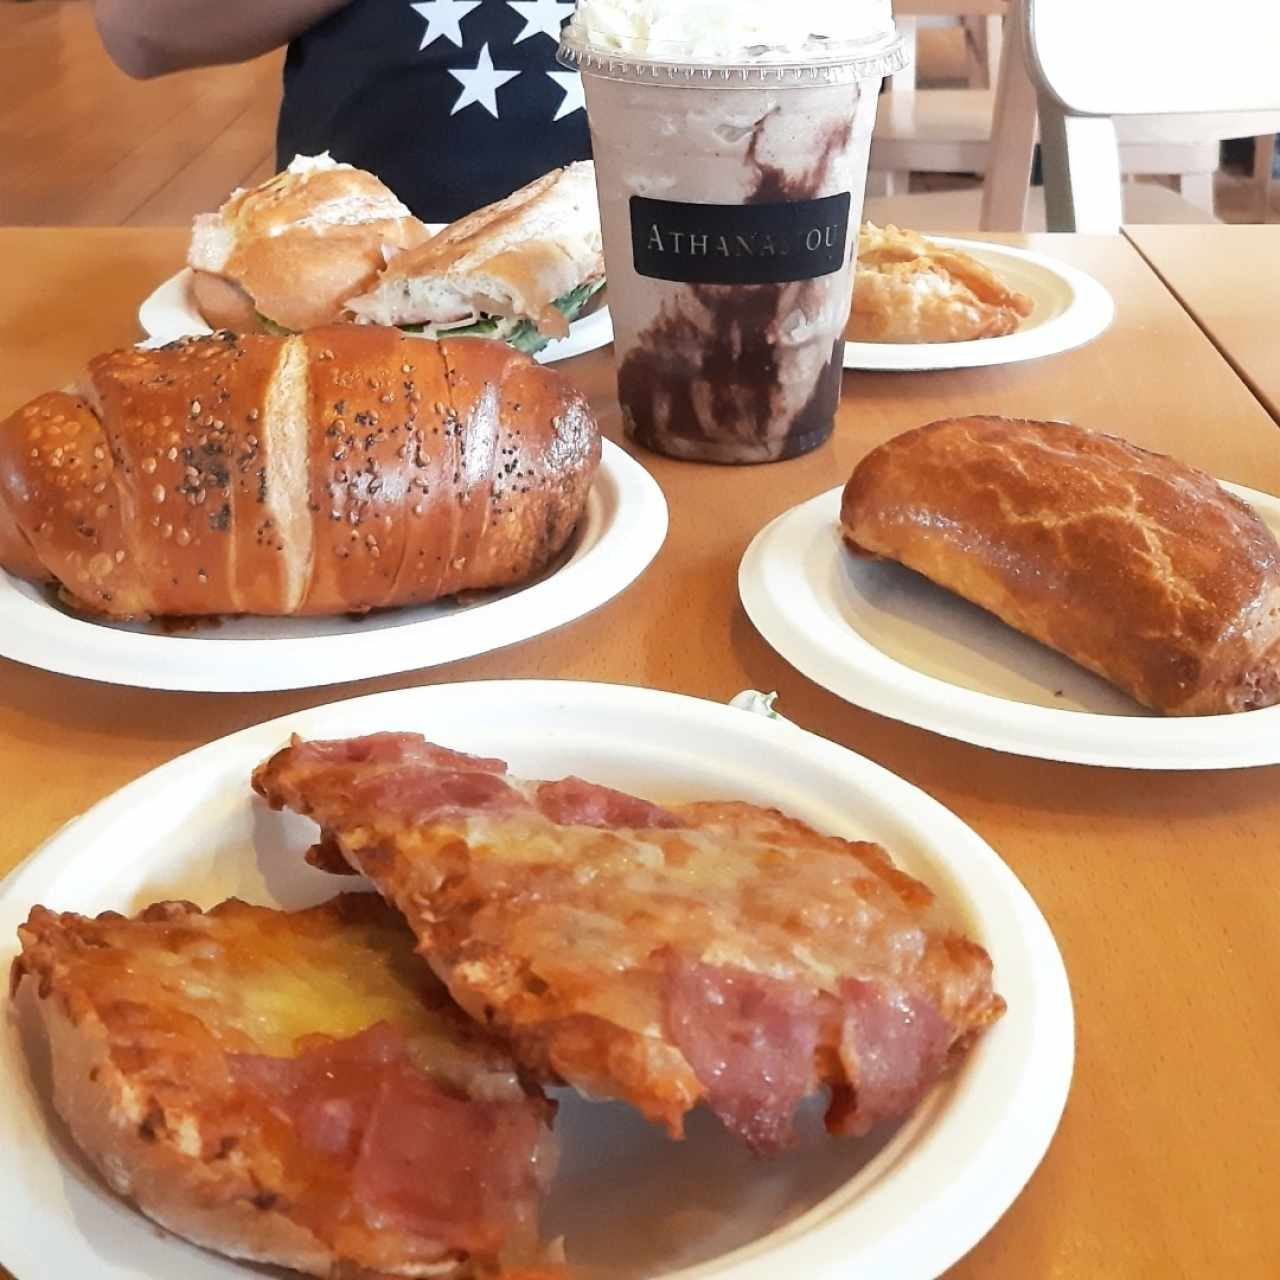 pizza de jamon, cachito de jamon, empanada de queso, frappe de cookies and creme con cafe, emparedado de pernil con mozzarrella